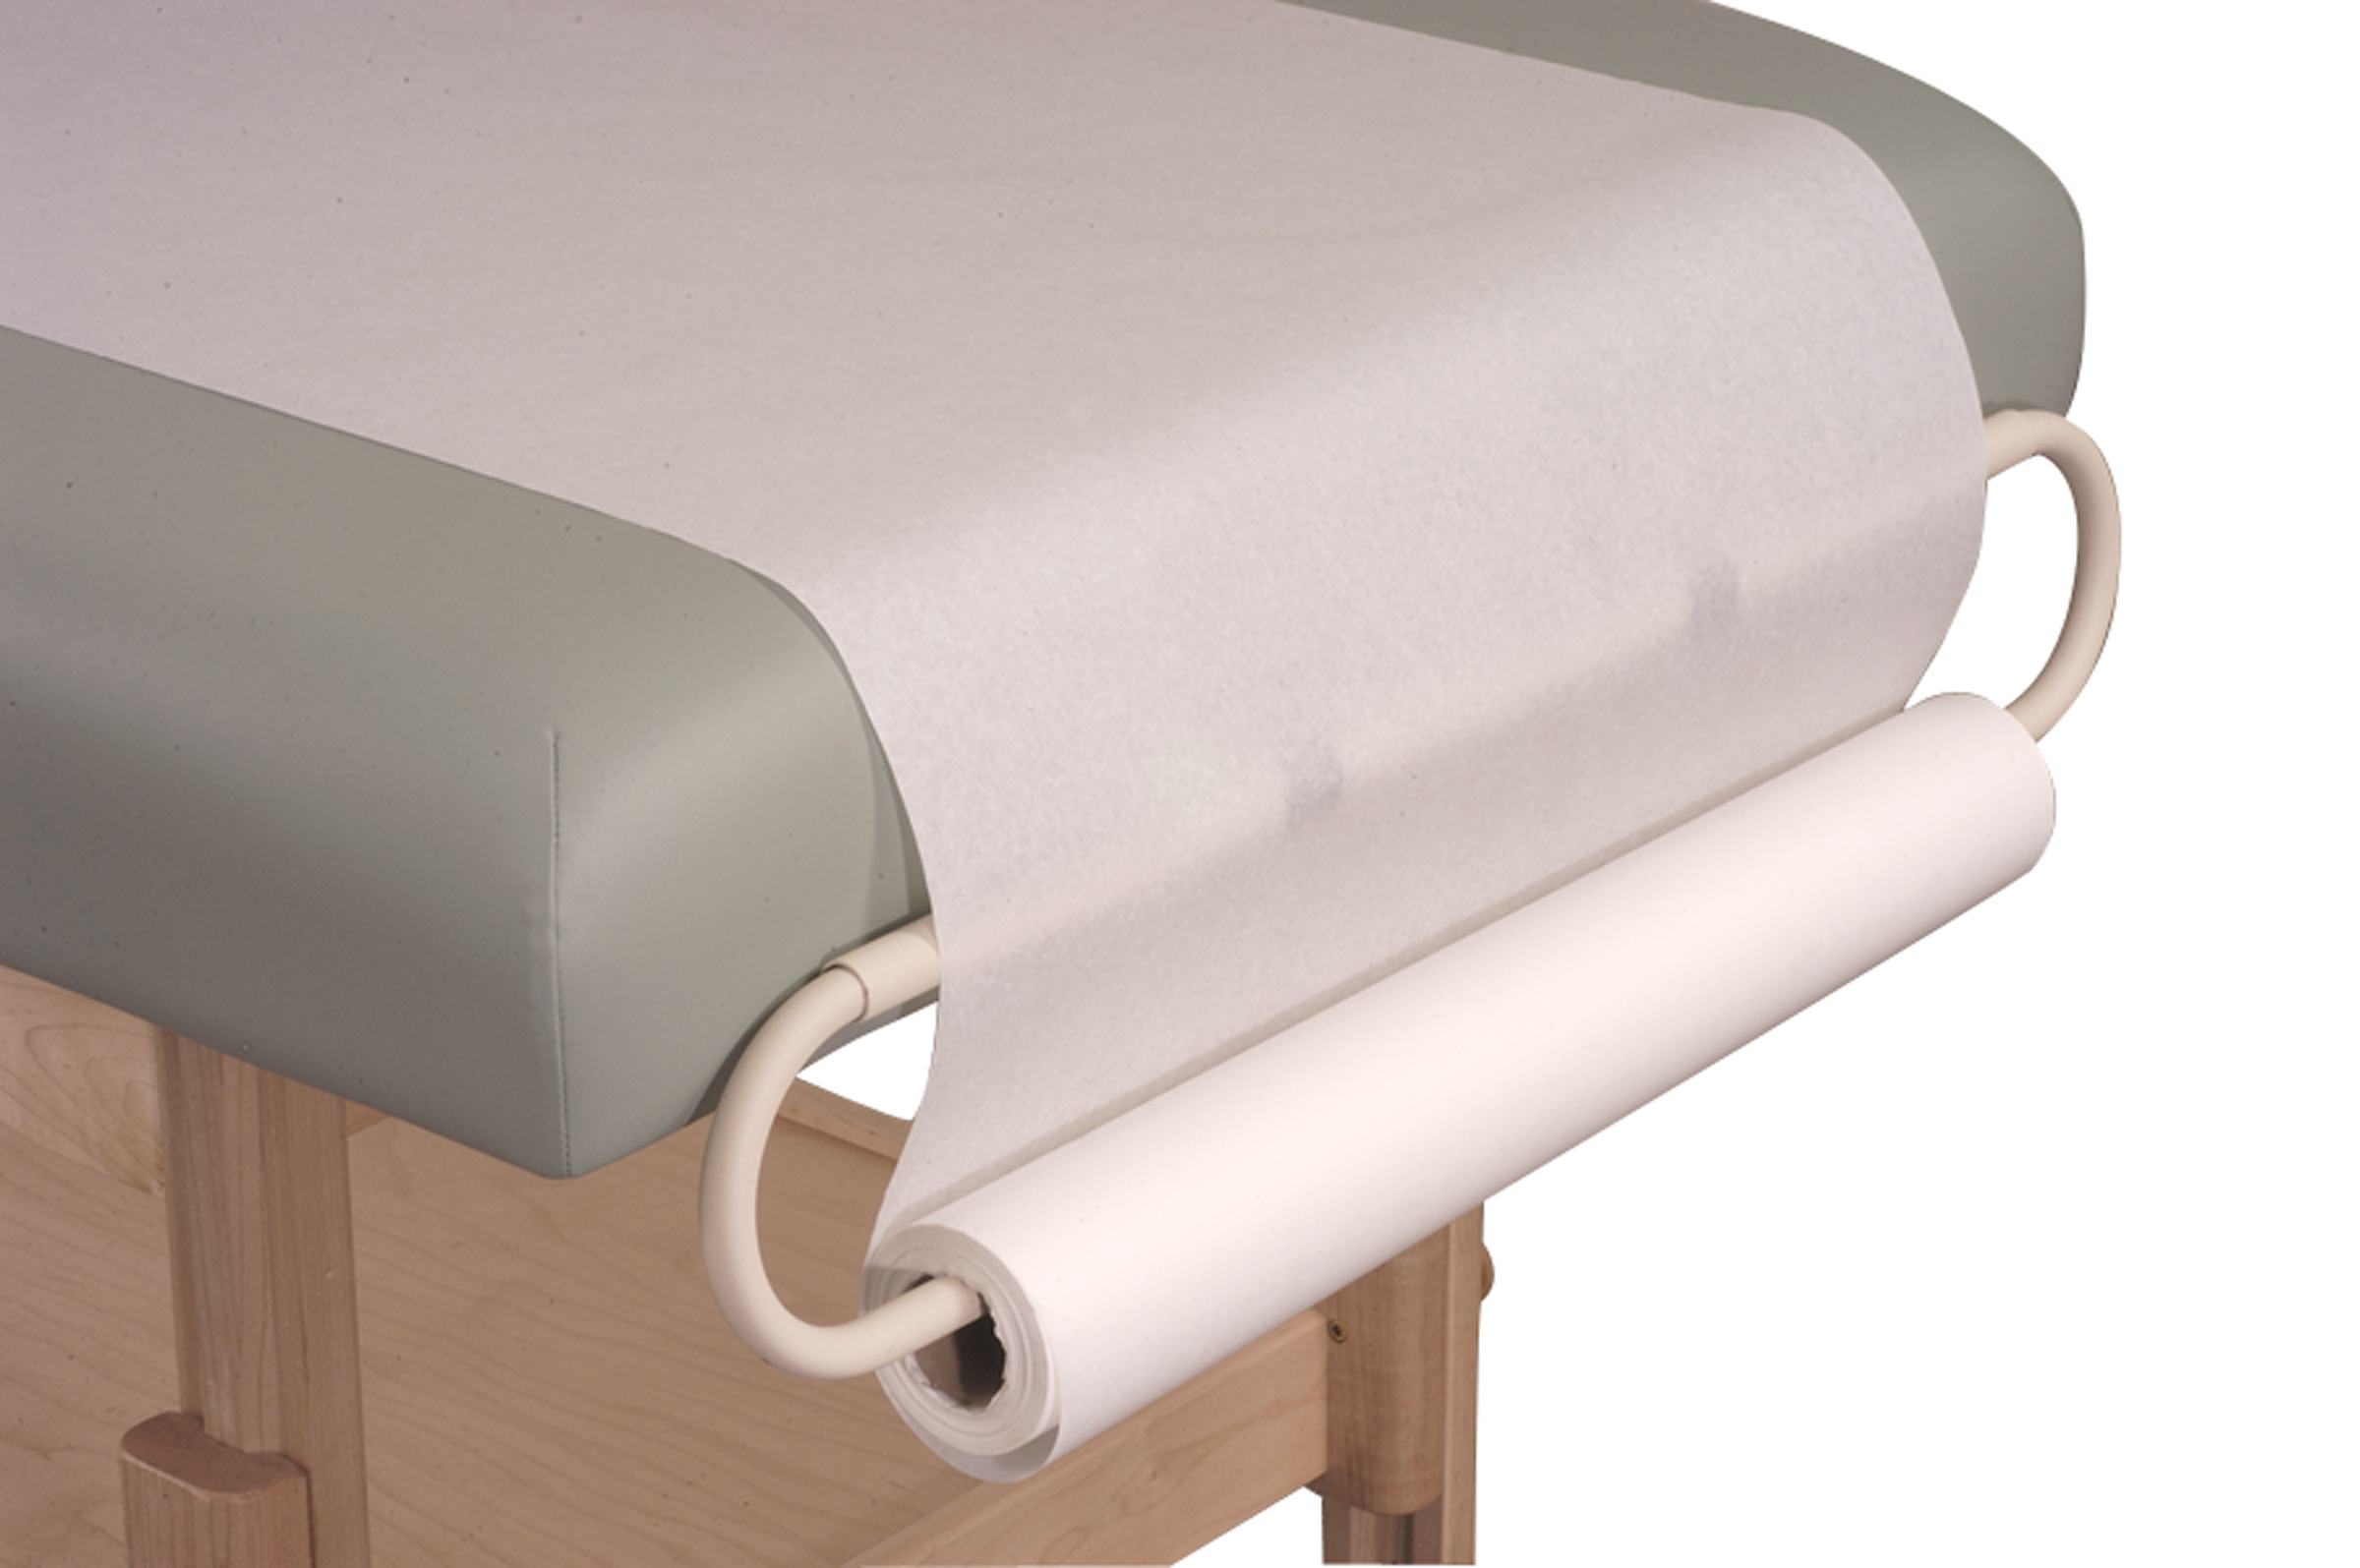 Universal Paper Roll Holder